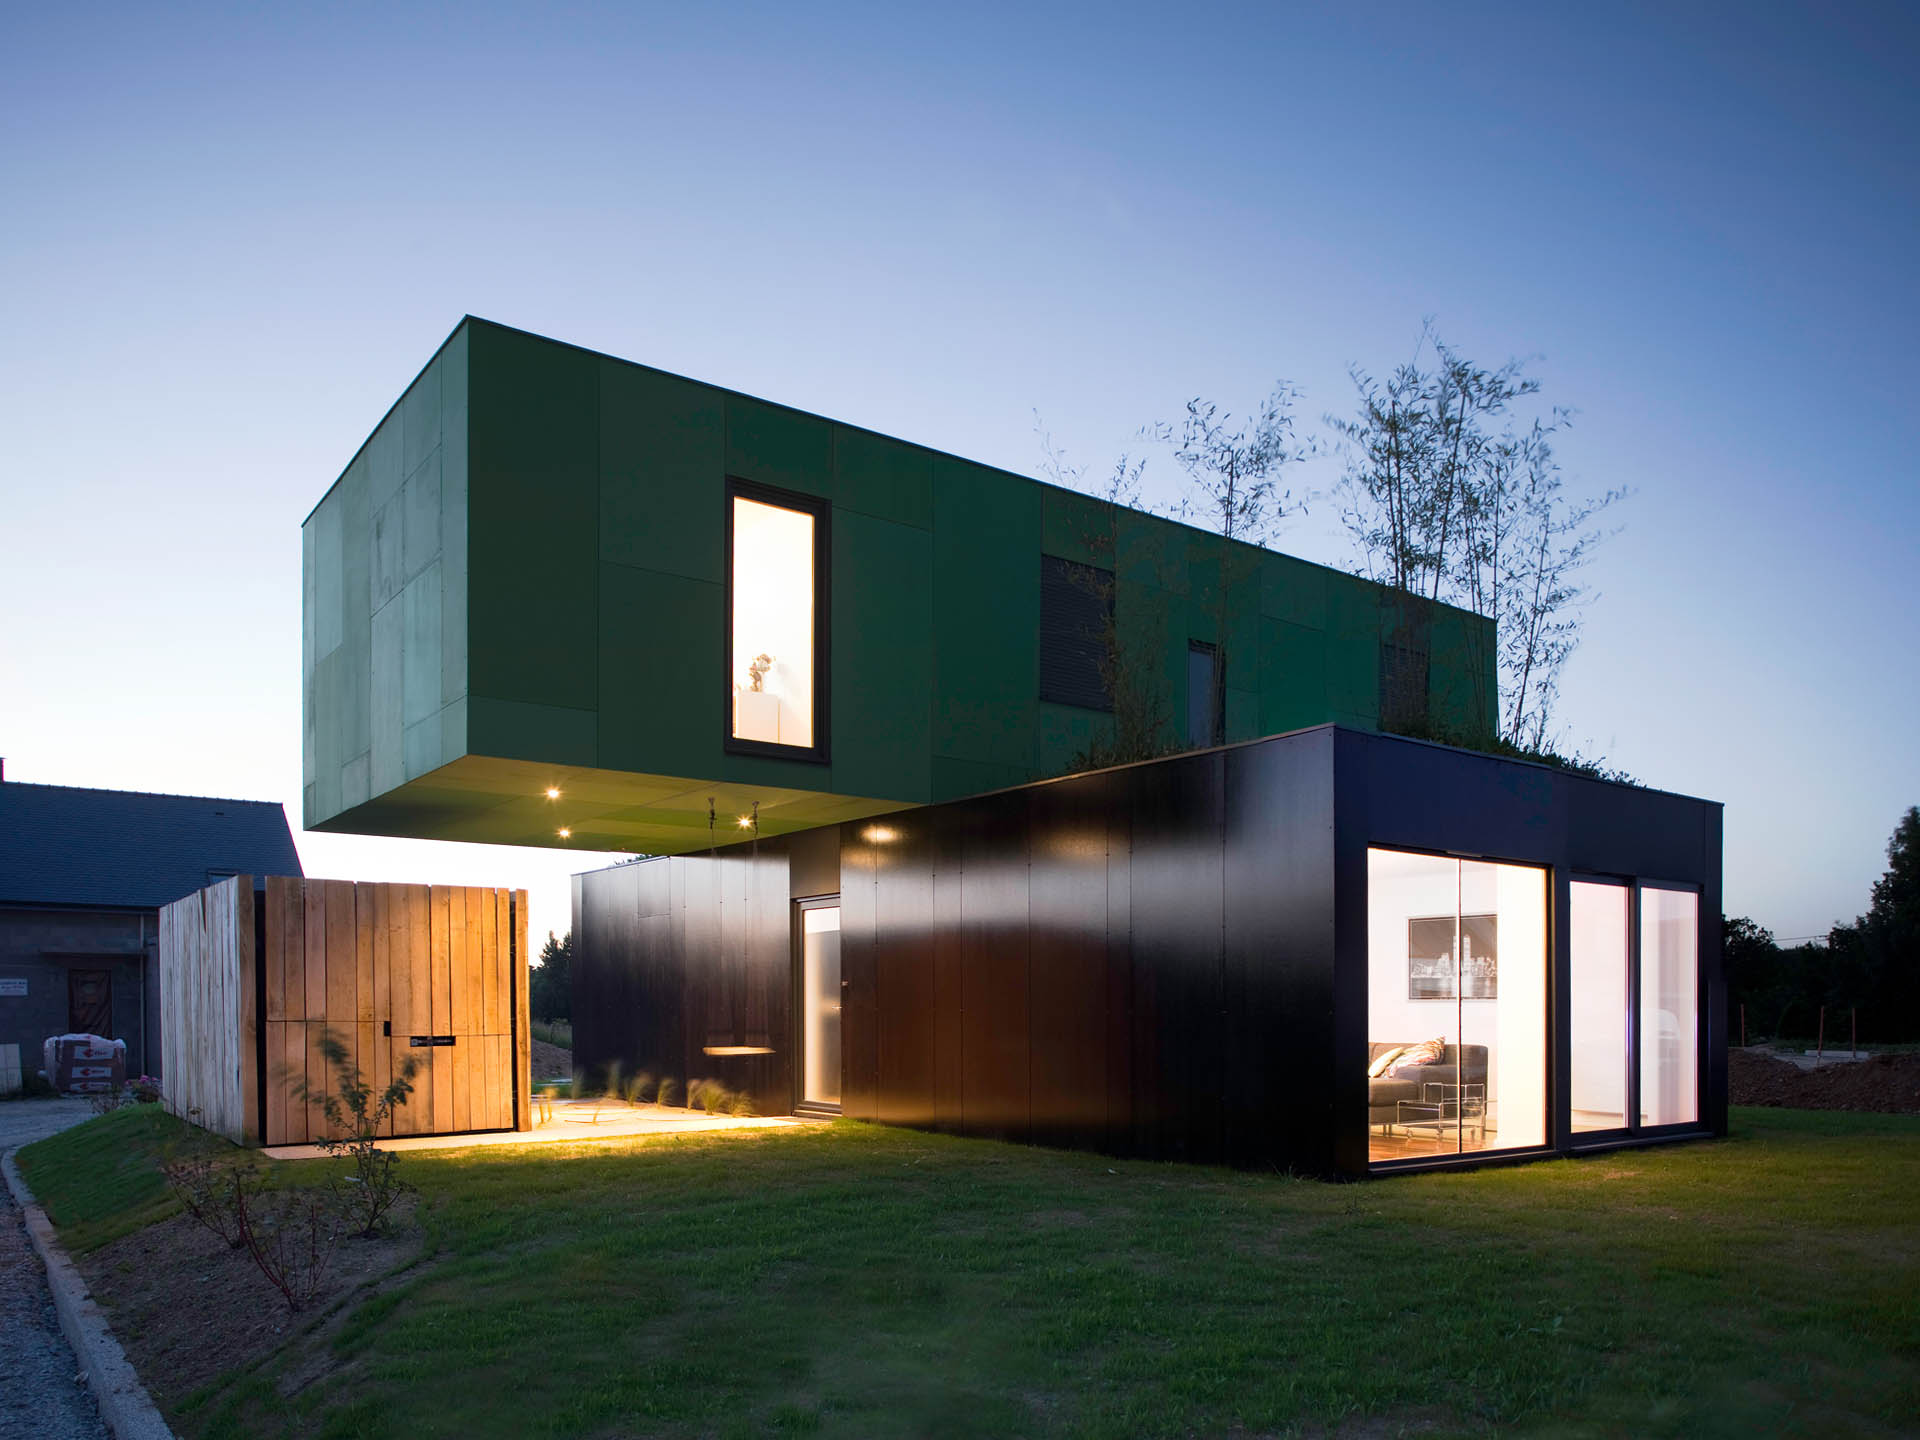 1920 1440 in crossbox a cantilevered modular house - Modular House